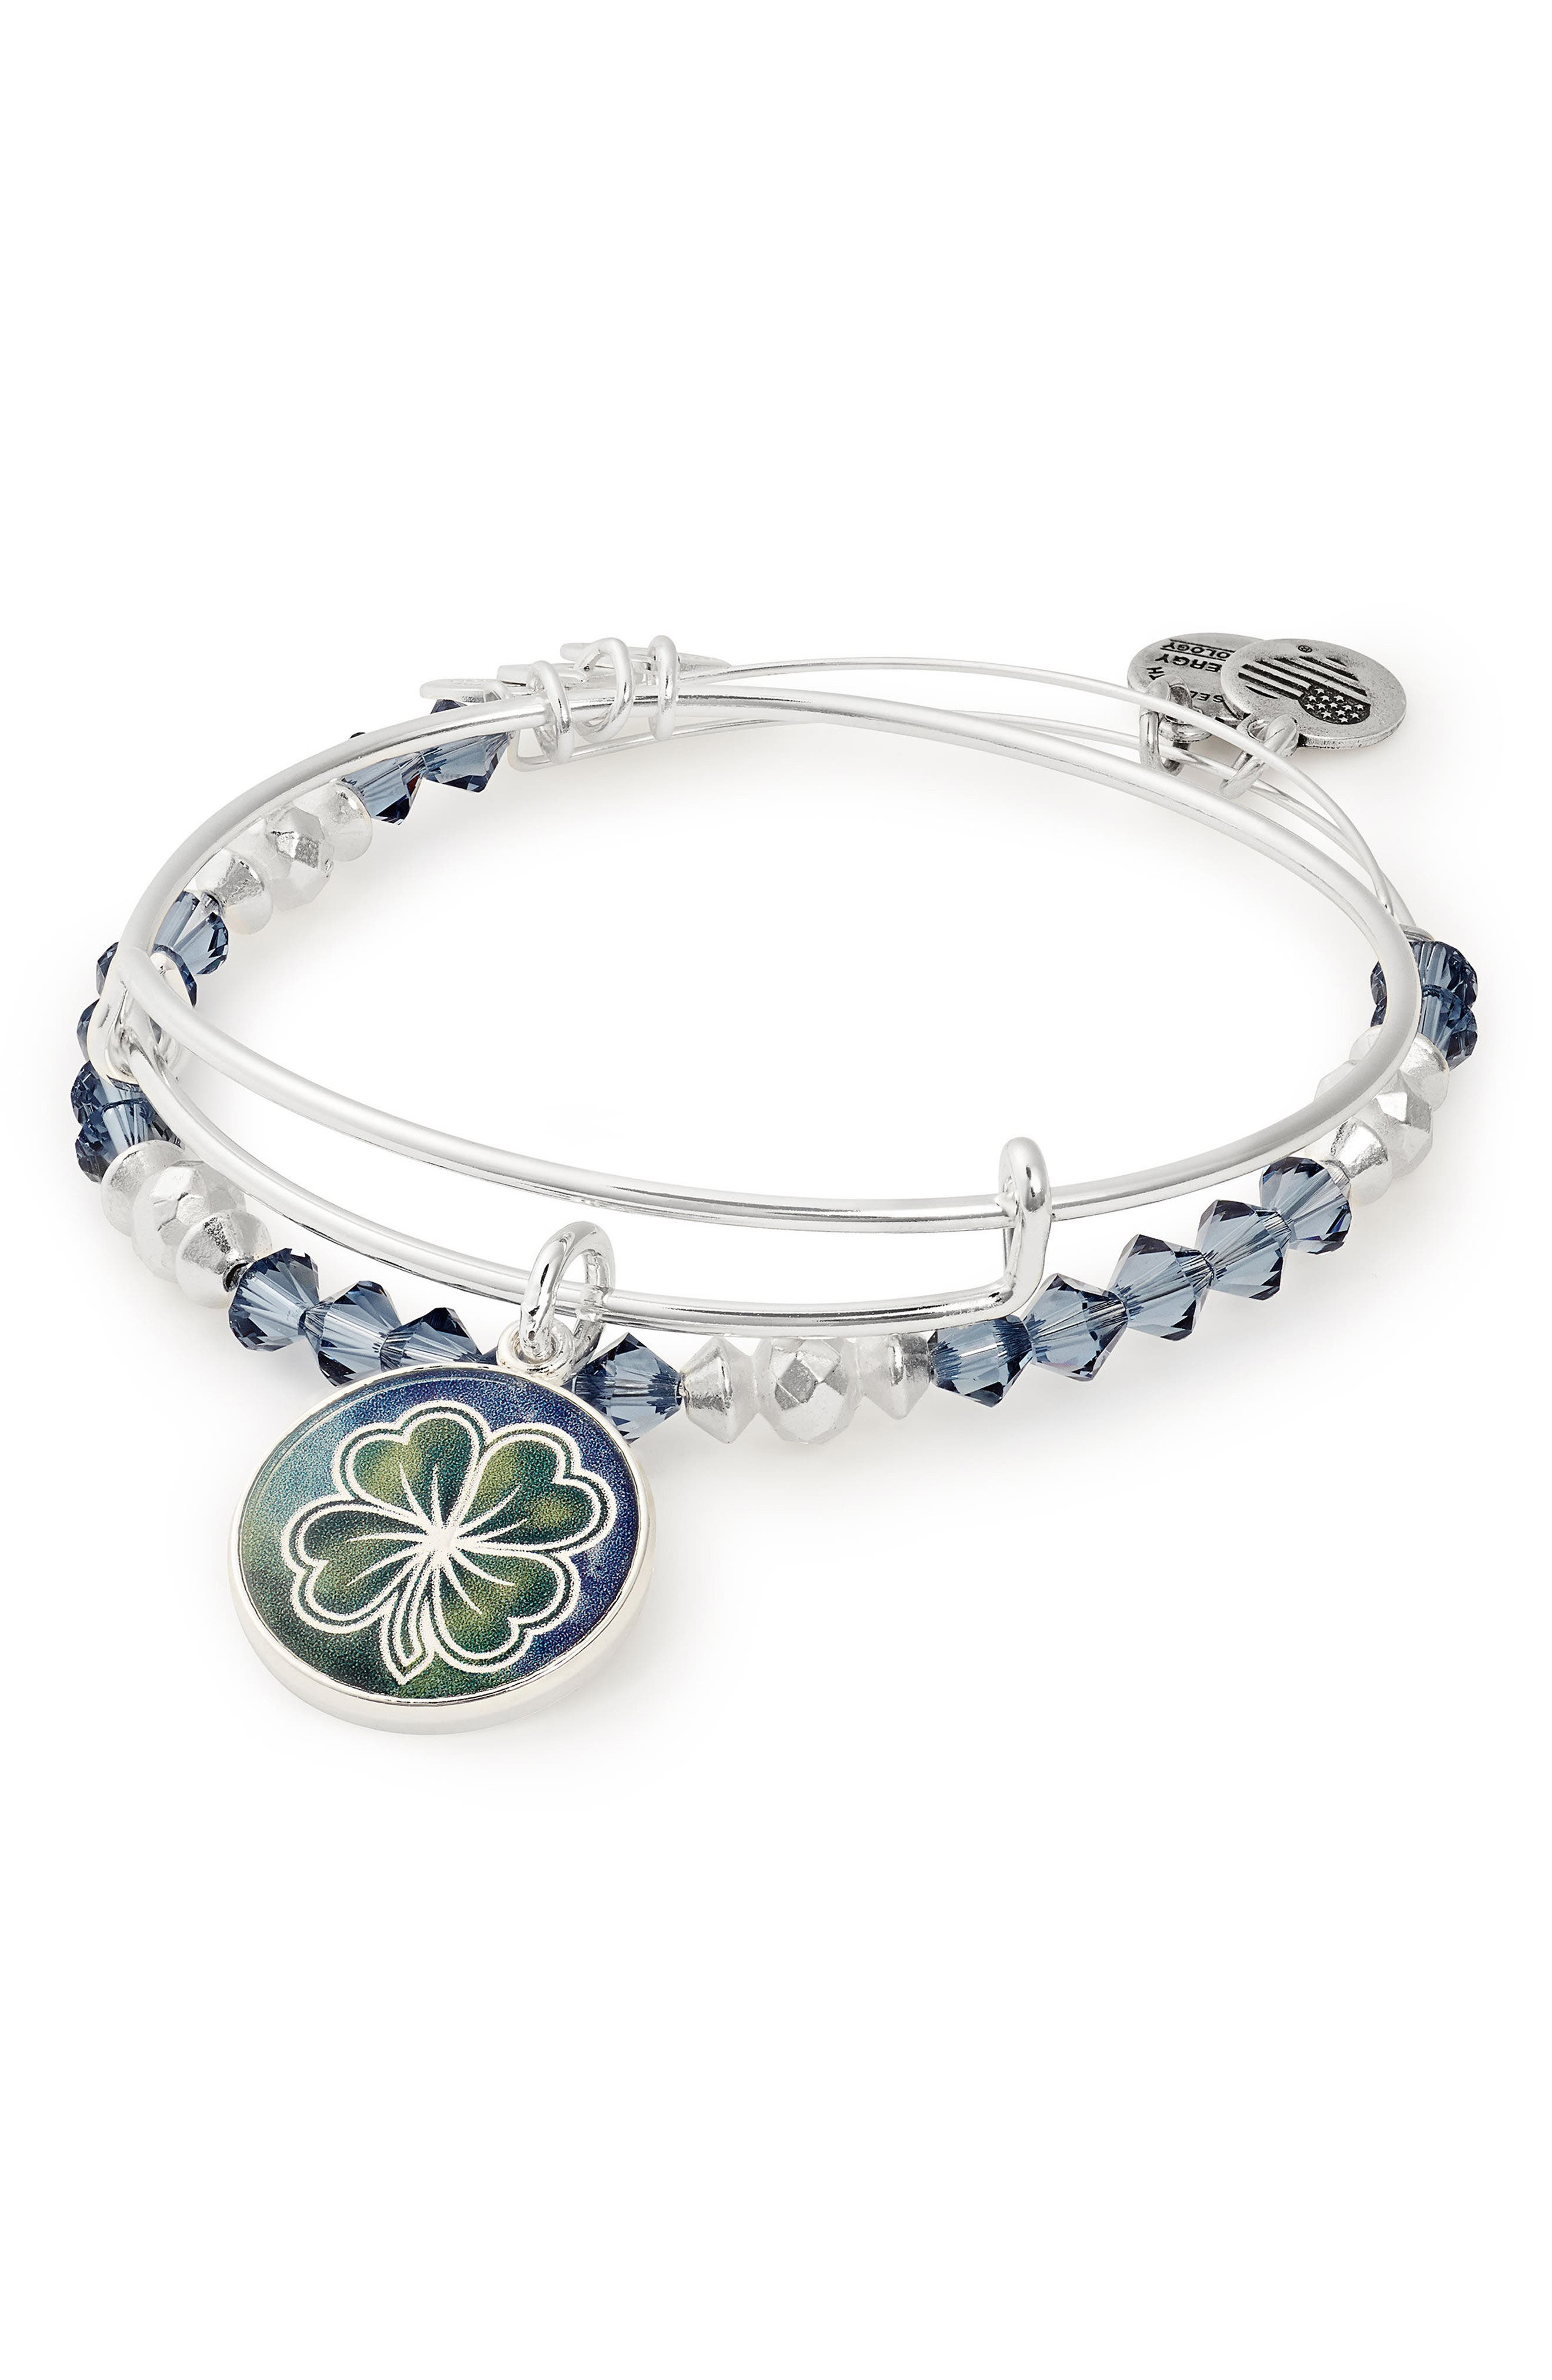 Four-Leaf Clover Art Infusion Set of 2 Bangles,                         Main,                         color, Silver